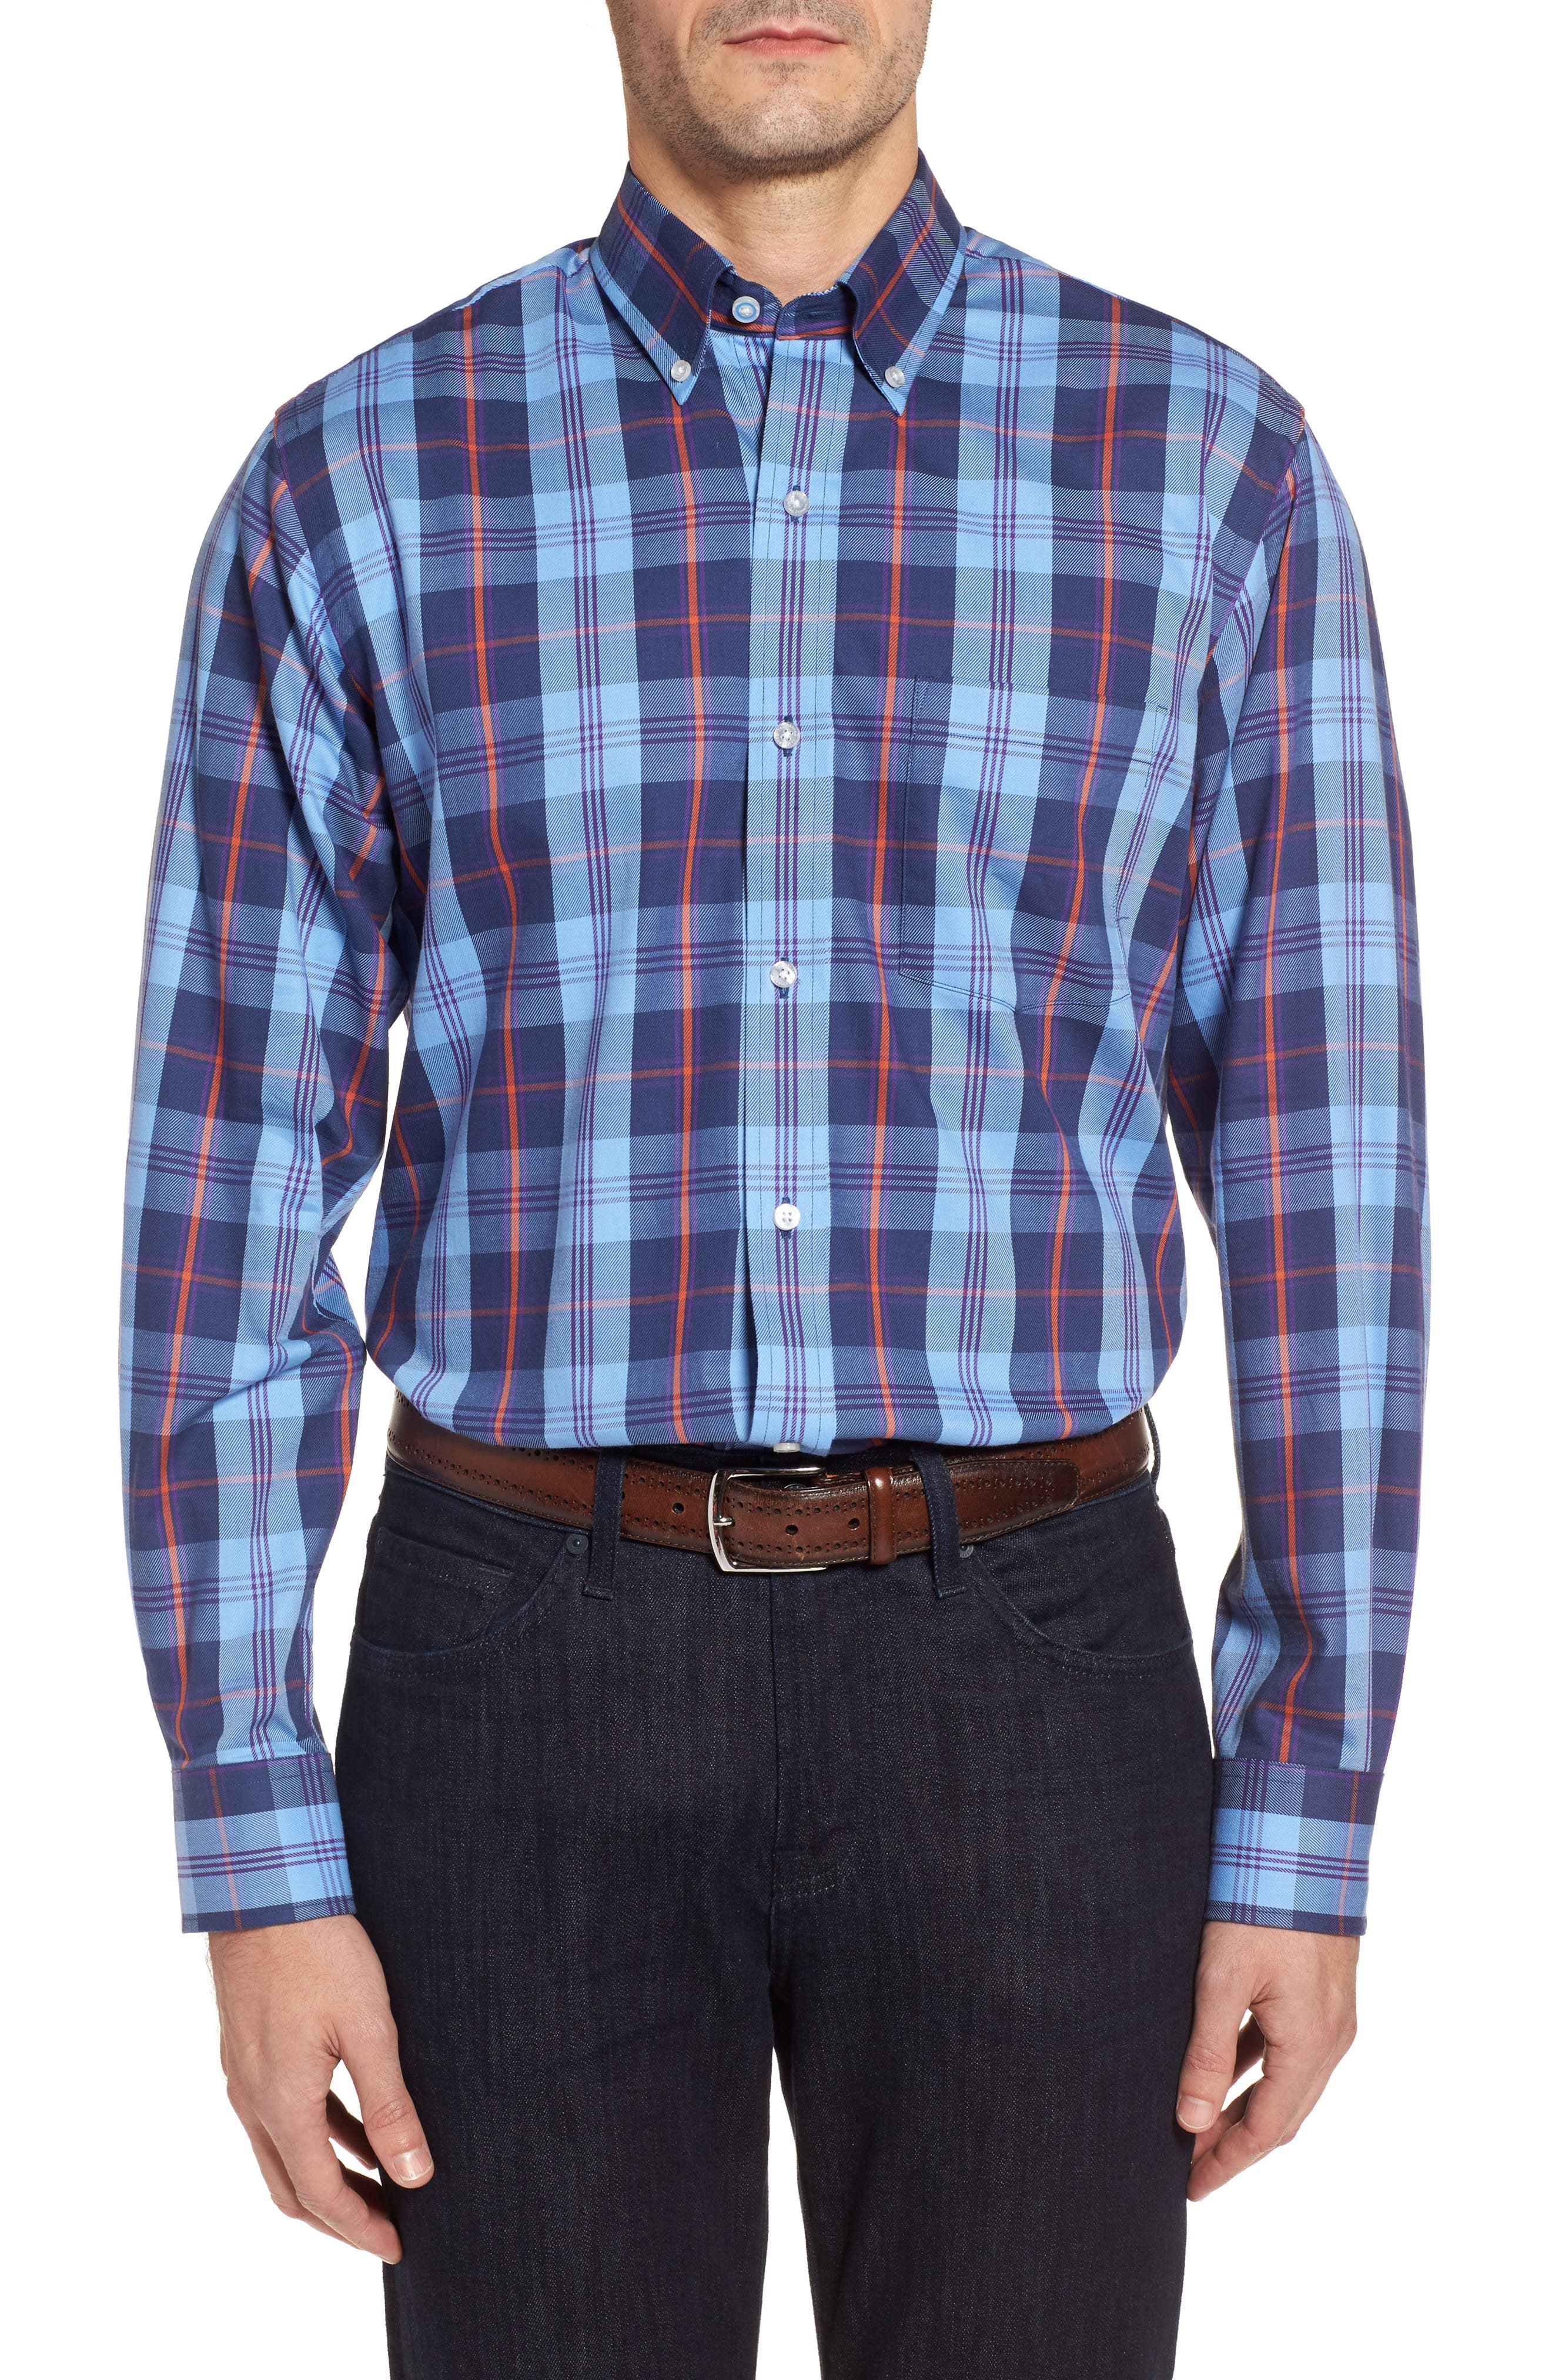 Main Image - TailorByrd Delcambre Plaid Twill Sport Shirt